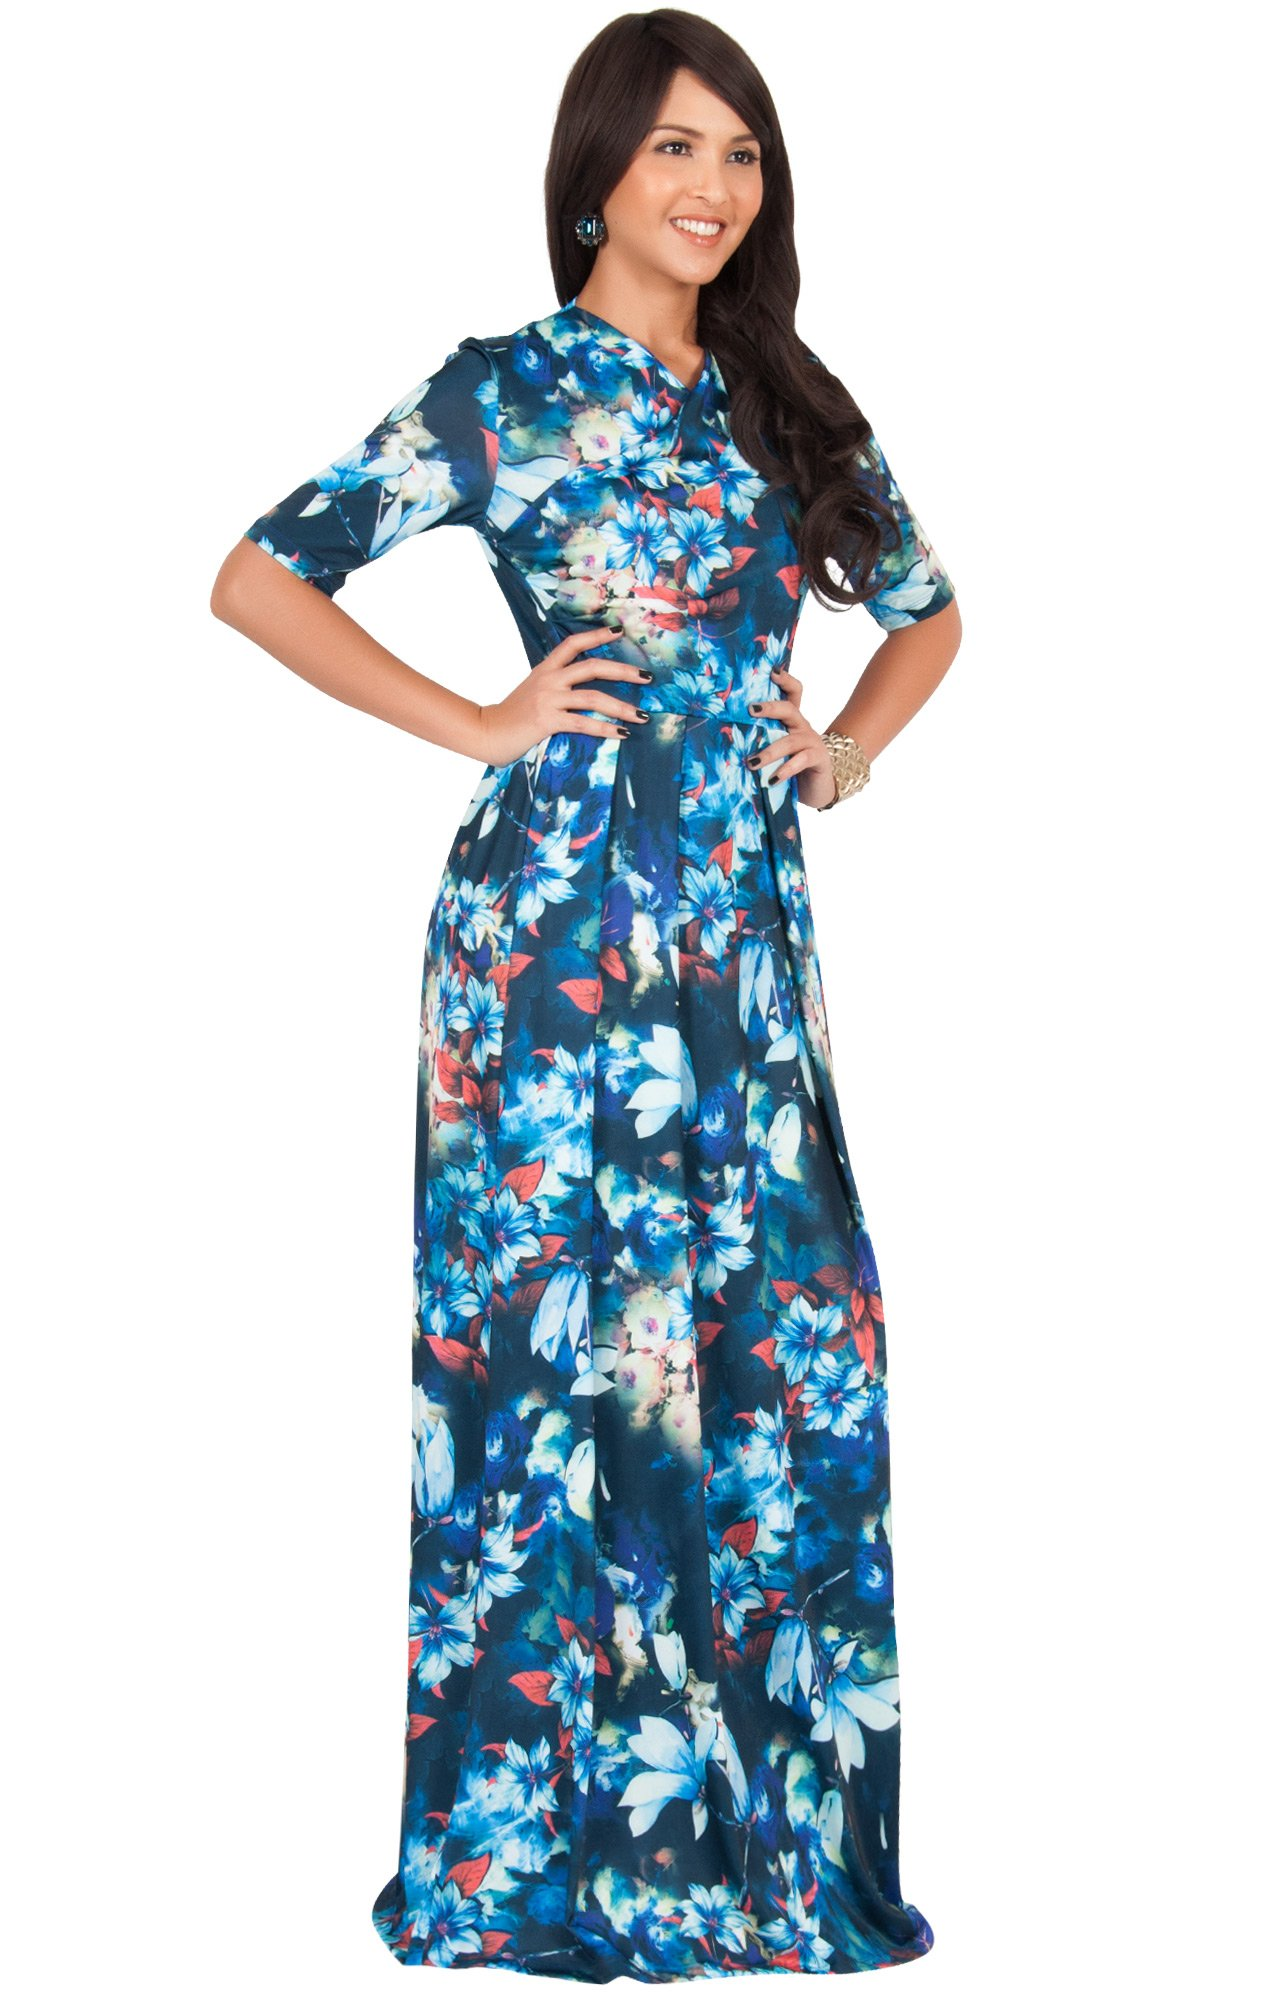 658f8c7c0b1d ... Summer Short Sleeve Floral Flower Print Printed Casual Party Elegant  Jersey Cute Sundress Gown Gowns Maxi Dress Dresses